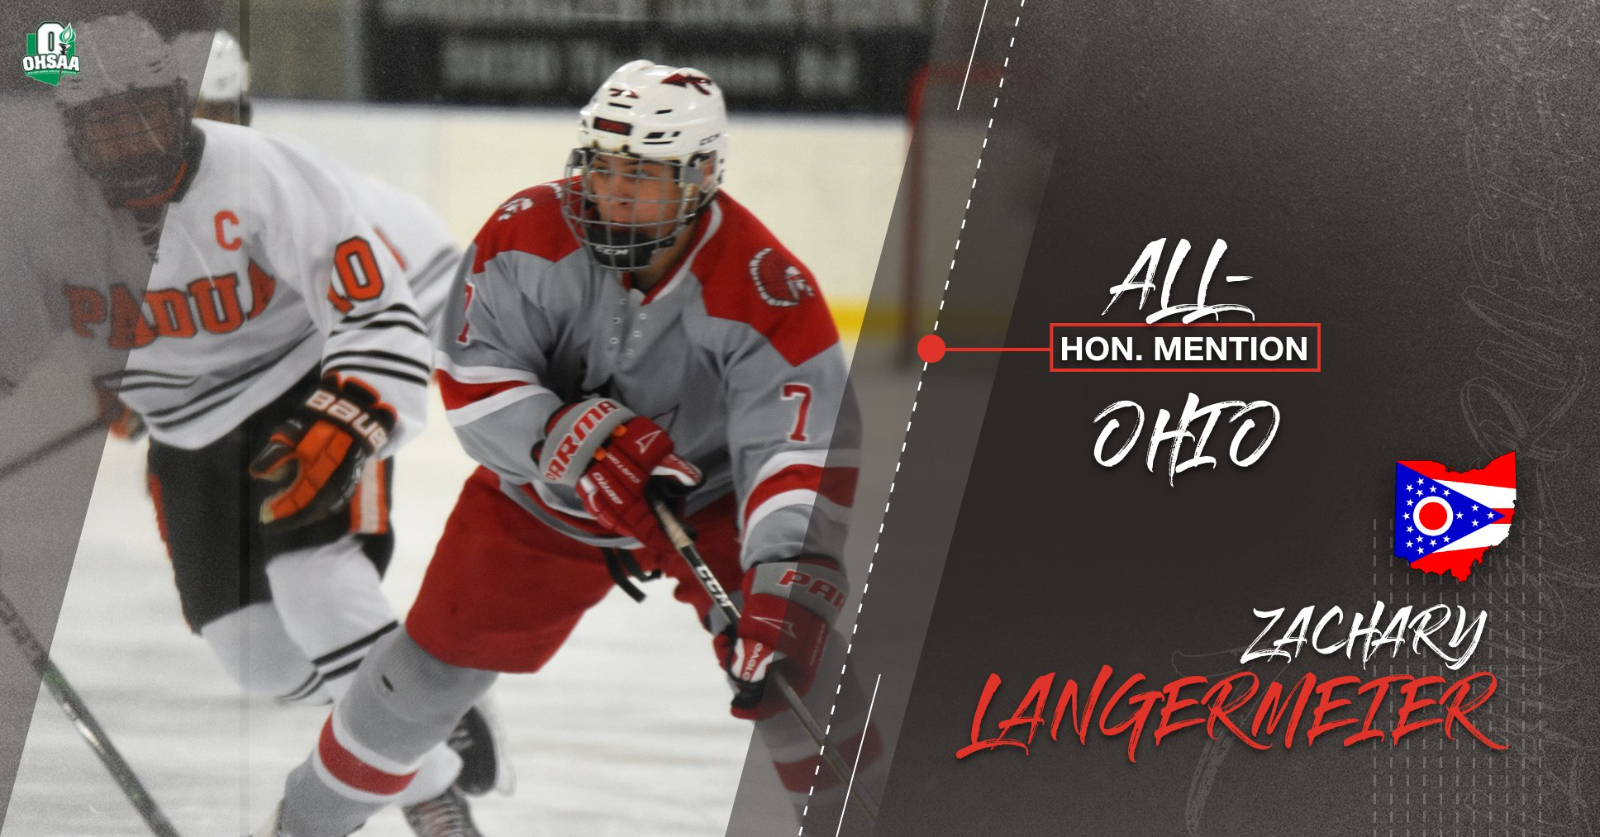 Congratulations to Parma Hockey's Zach Langermeier for Being Named Honorable Mention All-Ohio